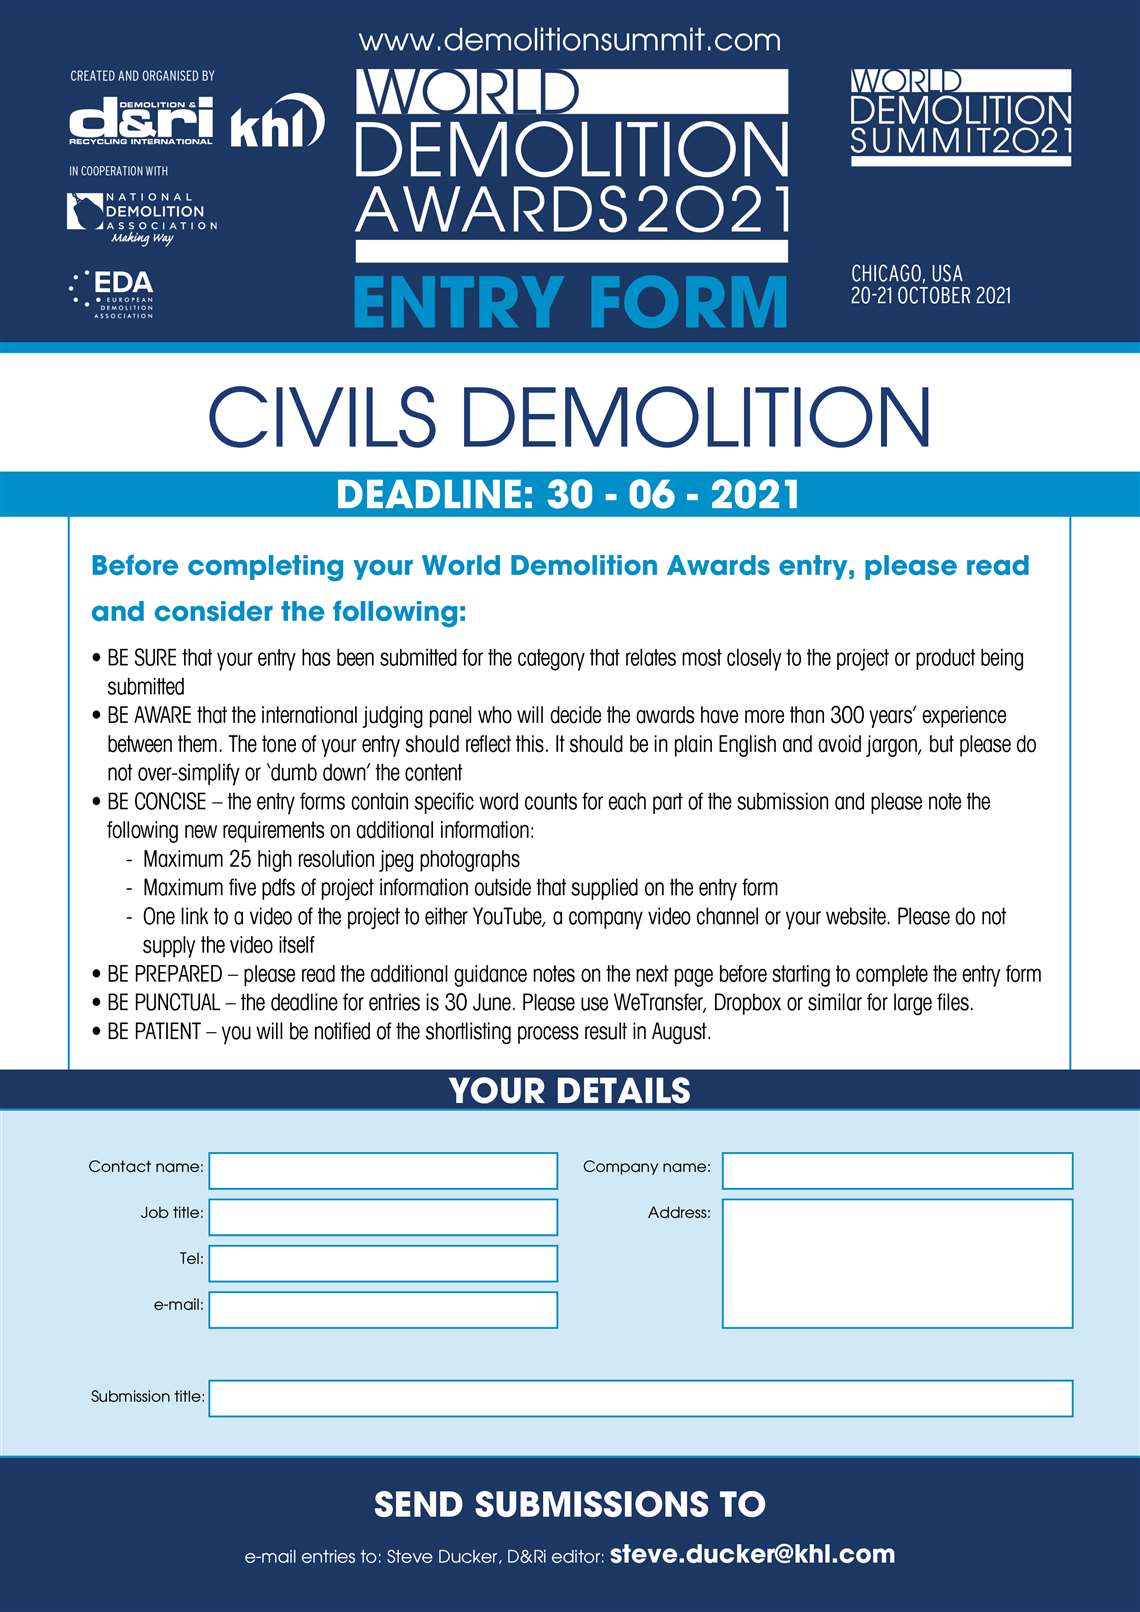 KHL World Demolition Awards entry form Civils Demolition